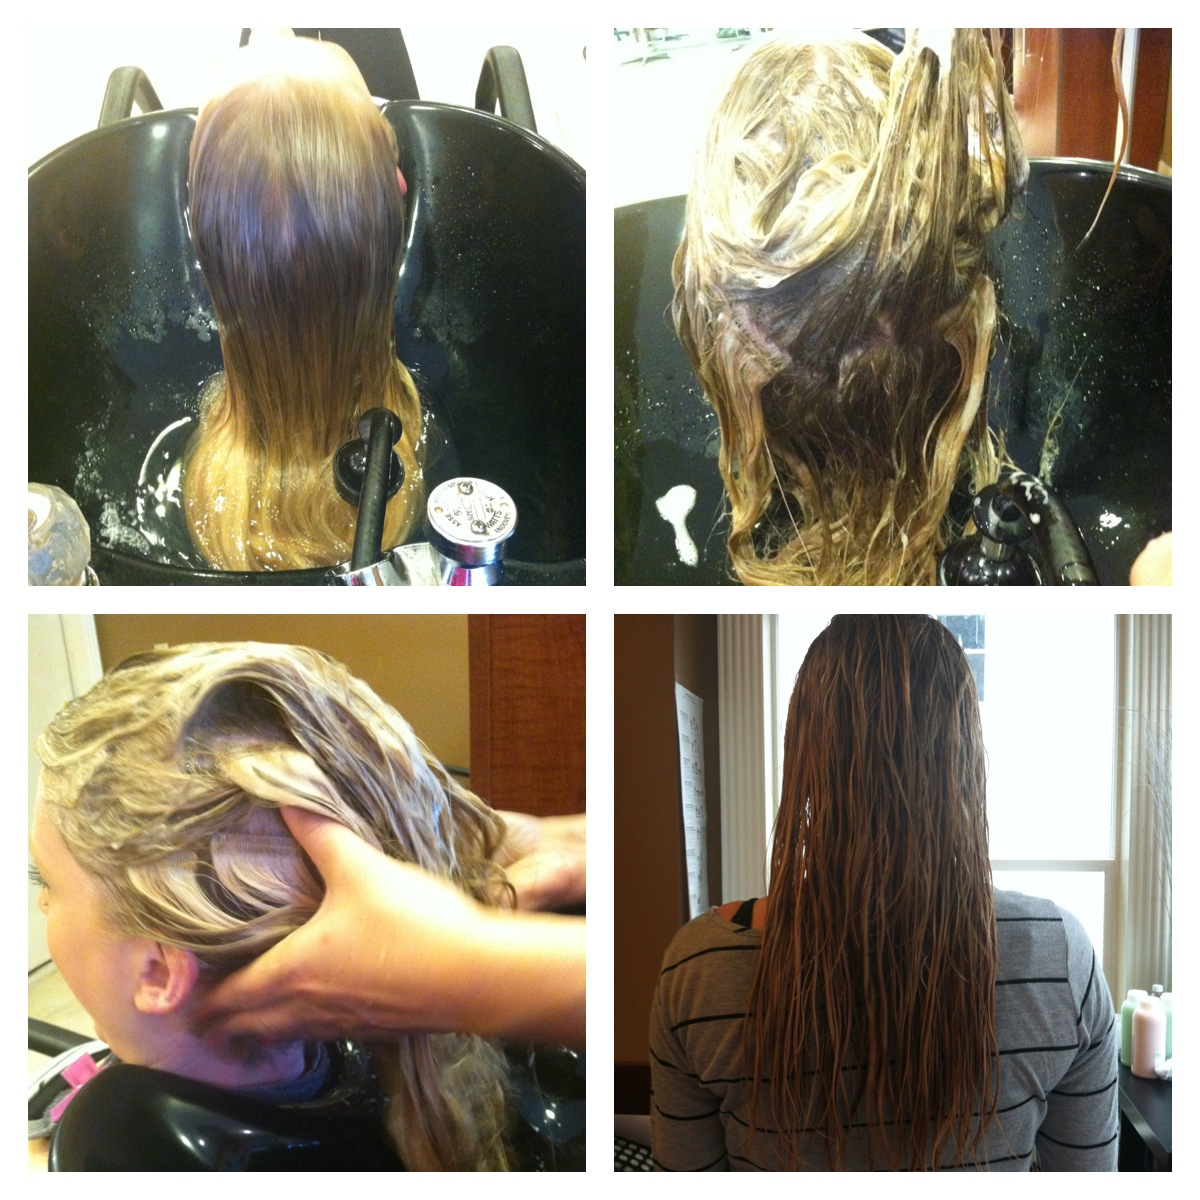 About those hair extensions angelboston how to wash you extensions fusion tape and micro bead step 1 pmusecretfo Images